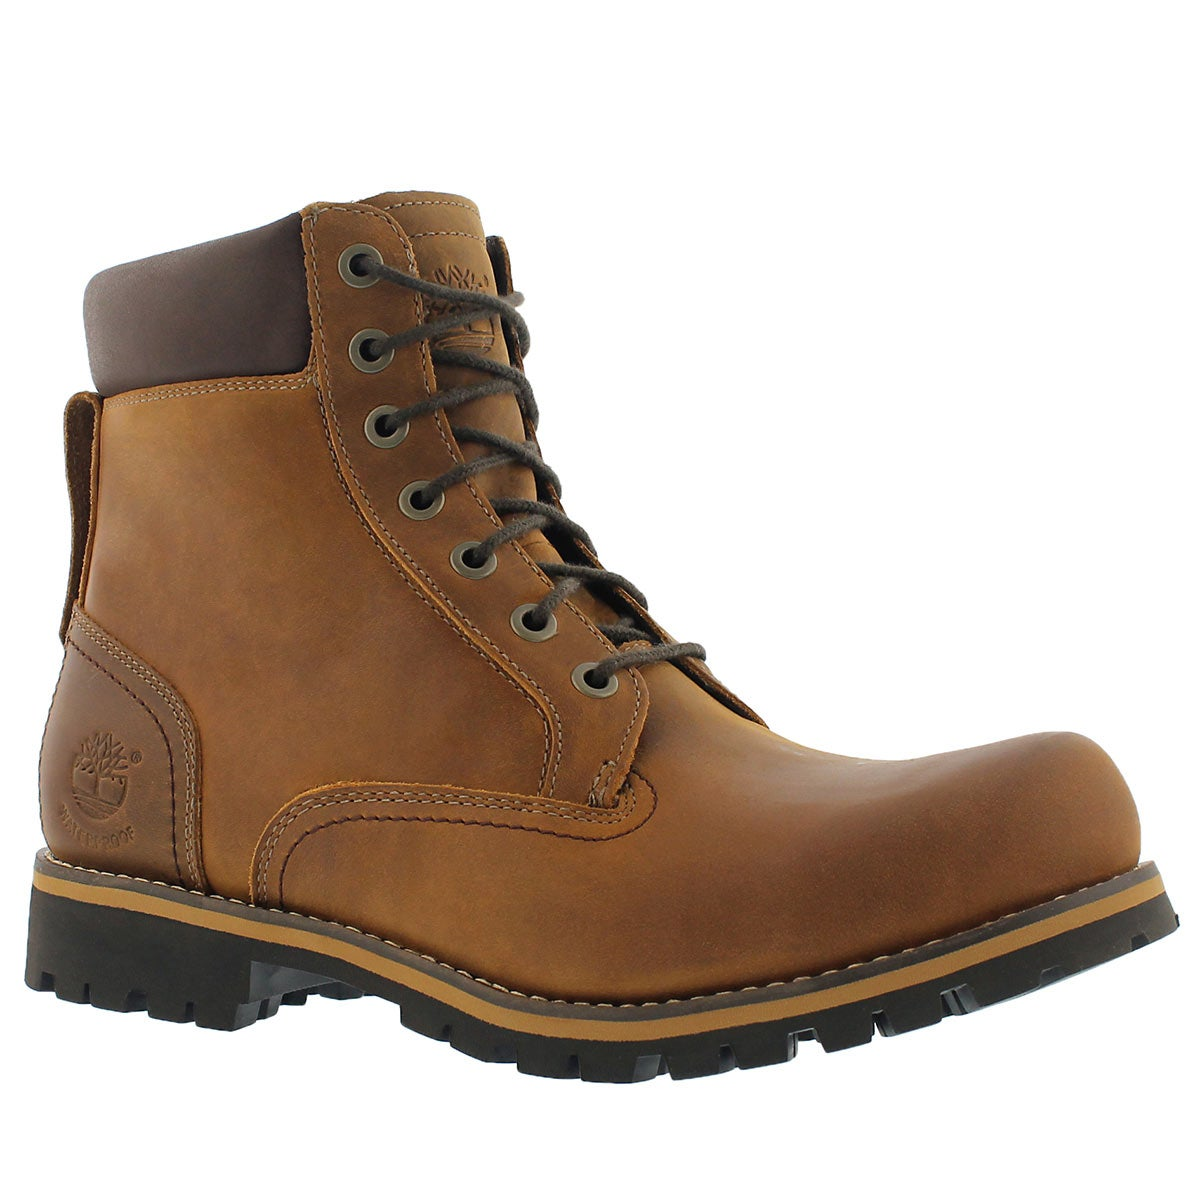 Men's TIMBERLAND RUGGED copper waterproof boots